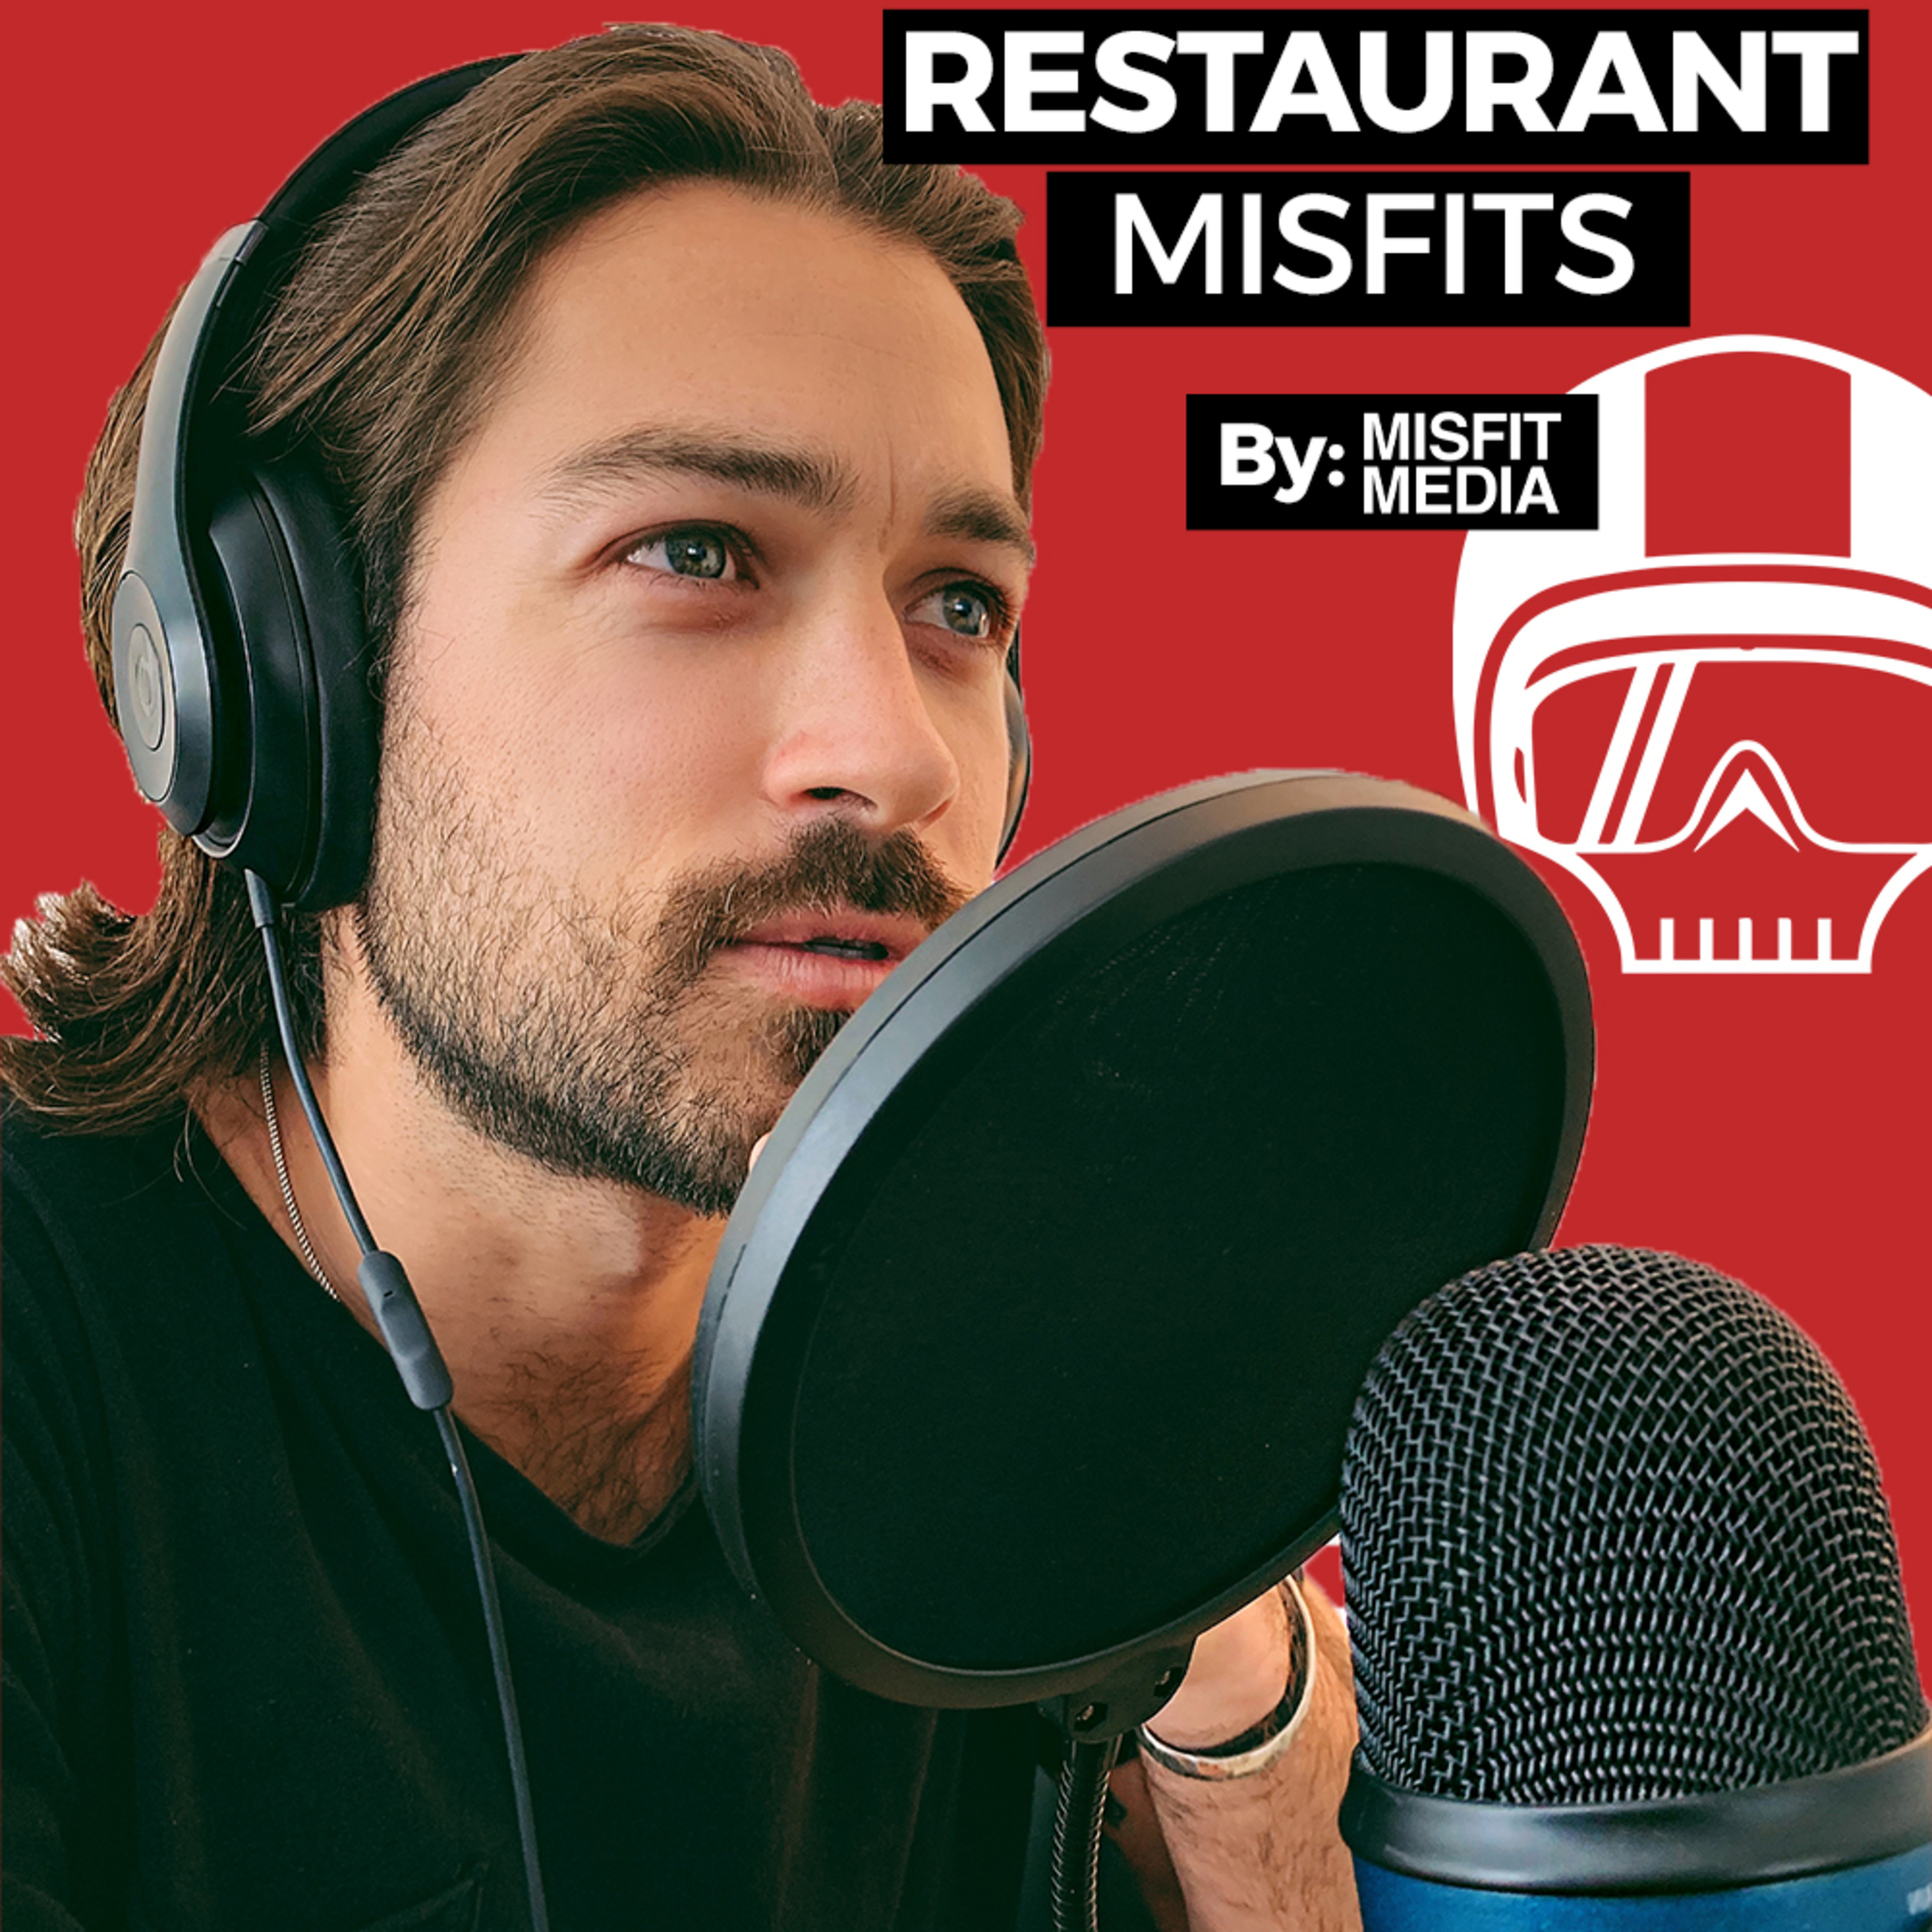 EP08 - COVID or NOT, We're Seeing Success With Rosati's Pizza